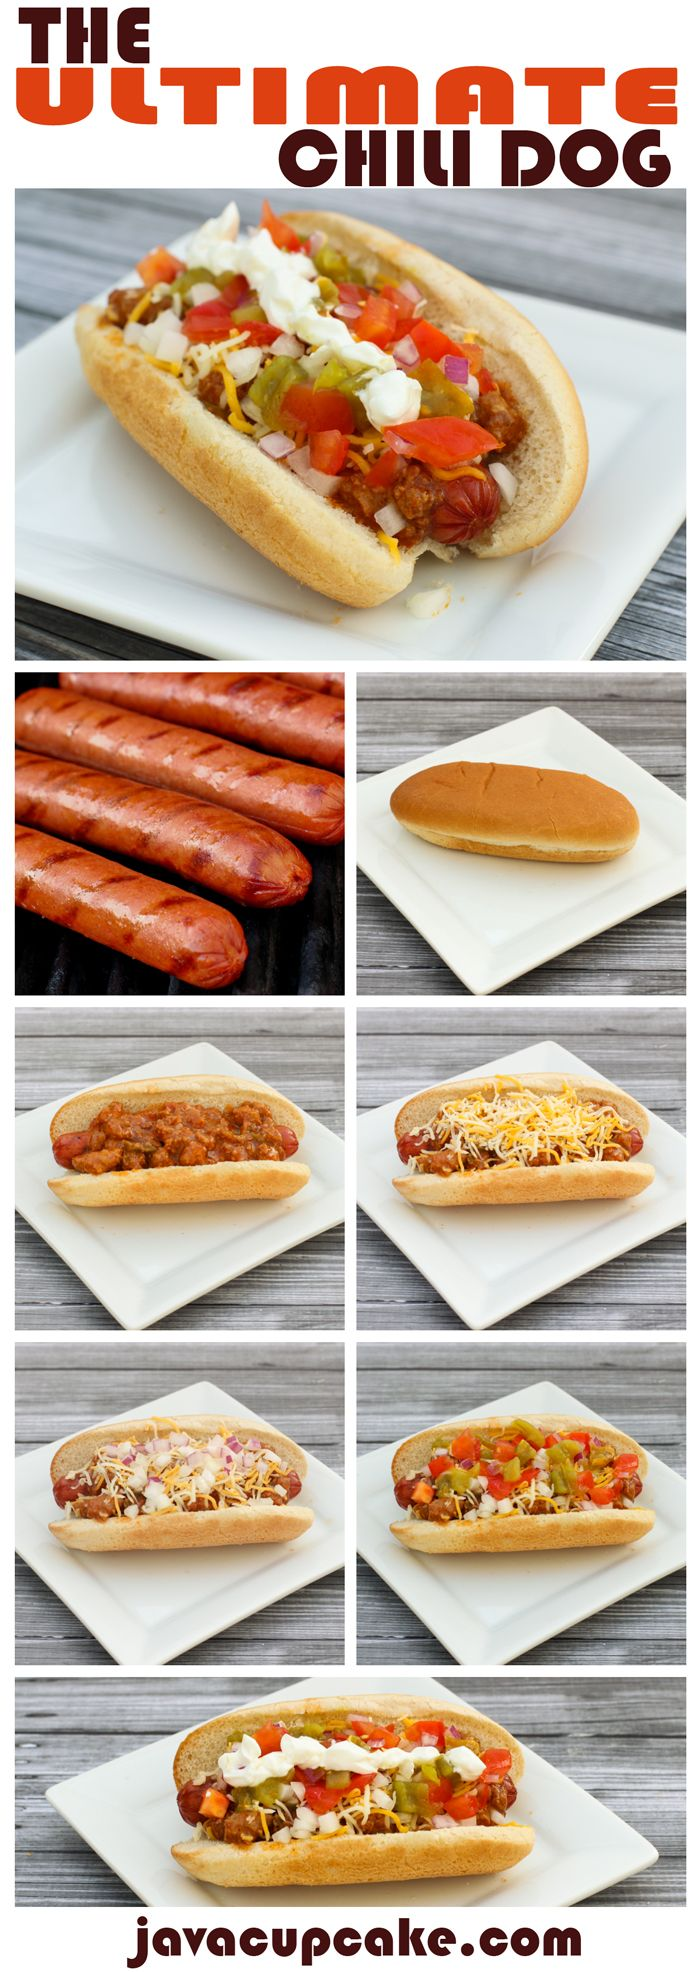 Celebrate National Hot Dog Day with The Ultimate Chili Dog! | JavaCupcake.com